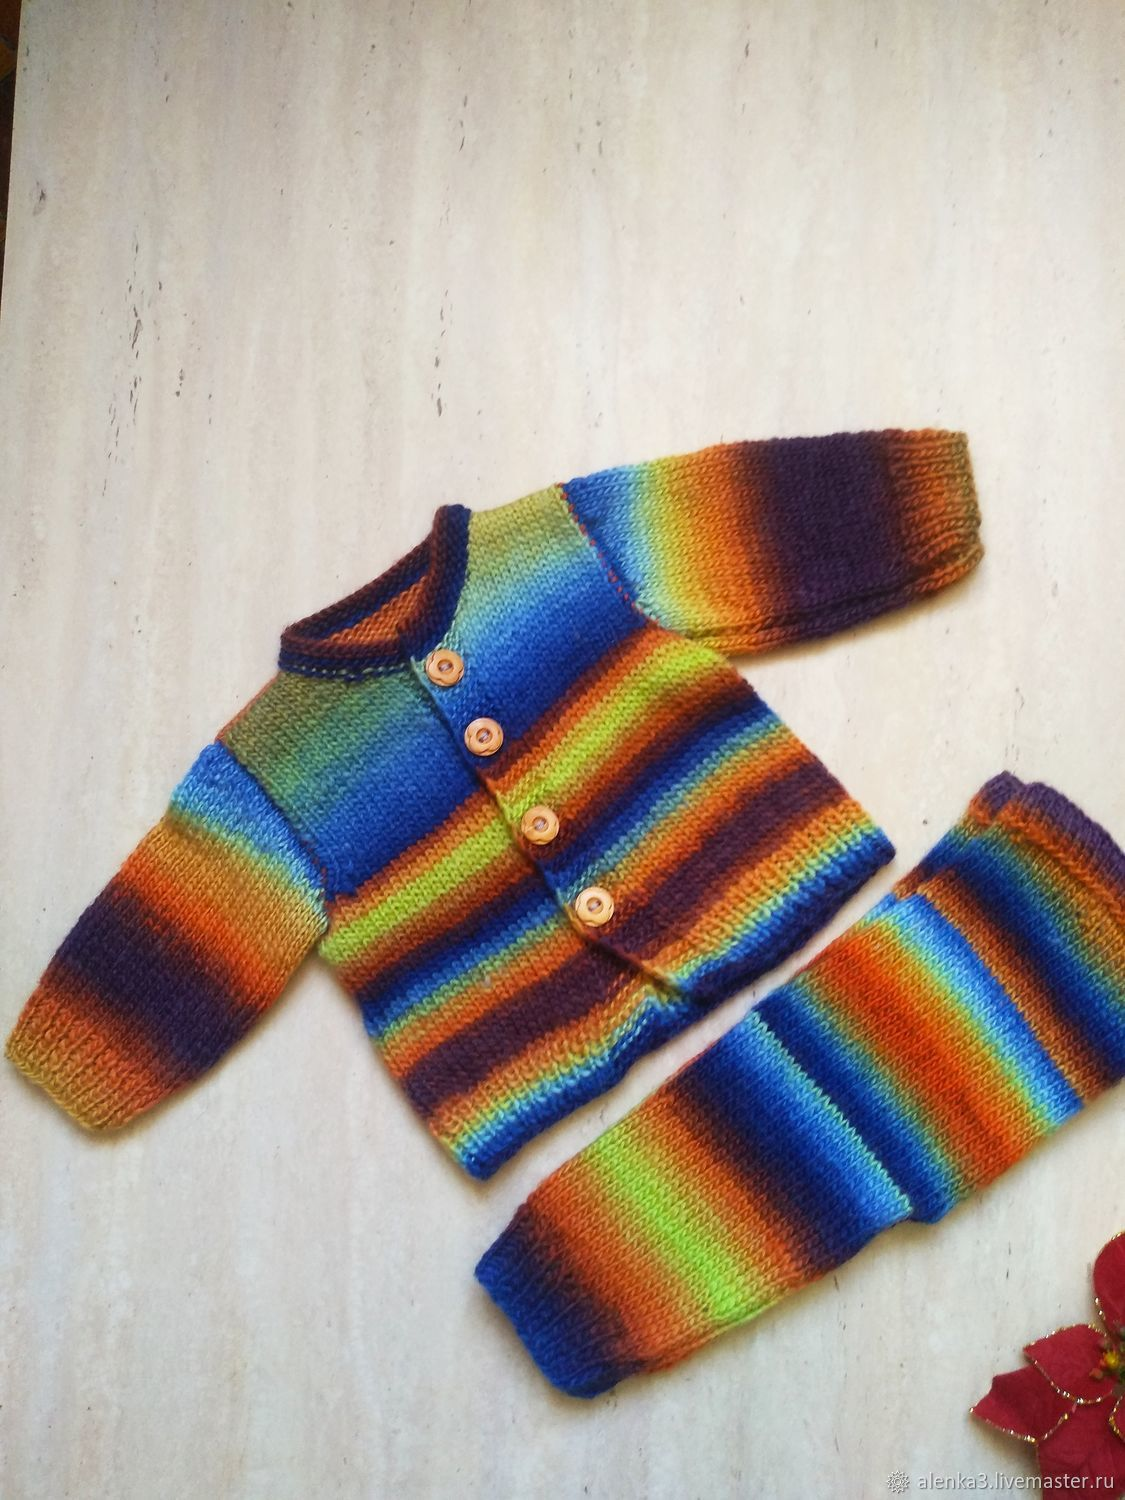 Baby clothing sets: knitted suit for kids 3-6 months old, Baby Clothing Sets, Moscow,  Фото №1